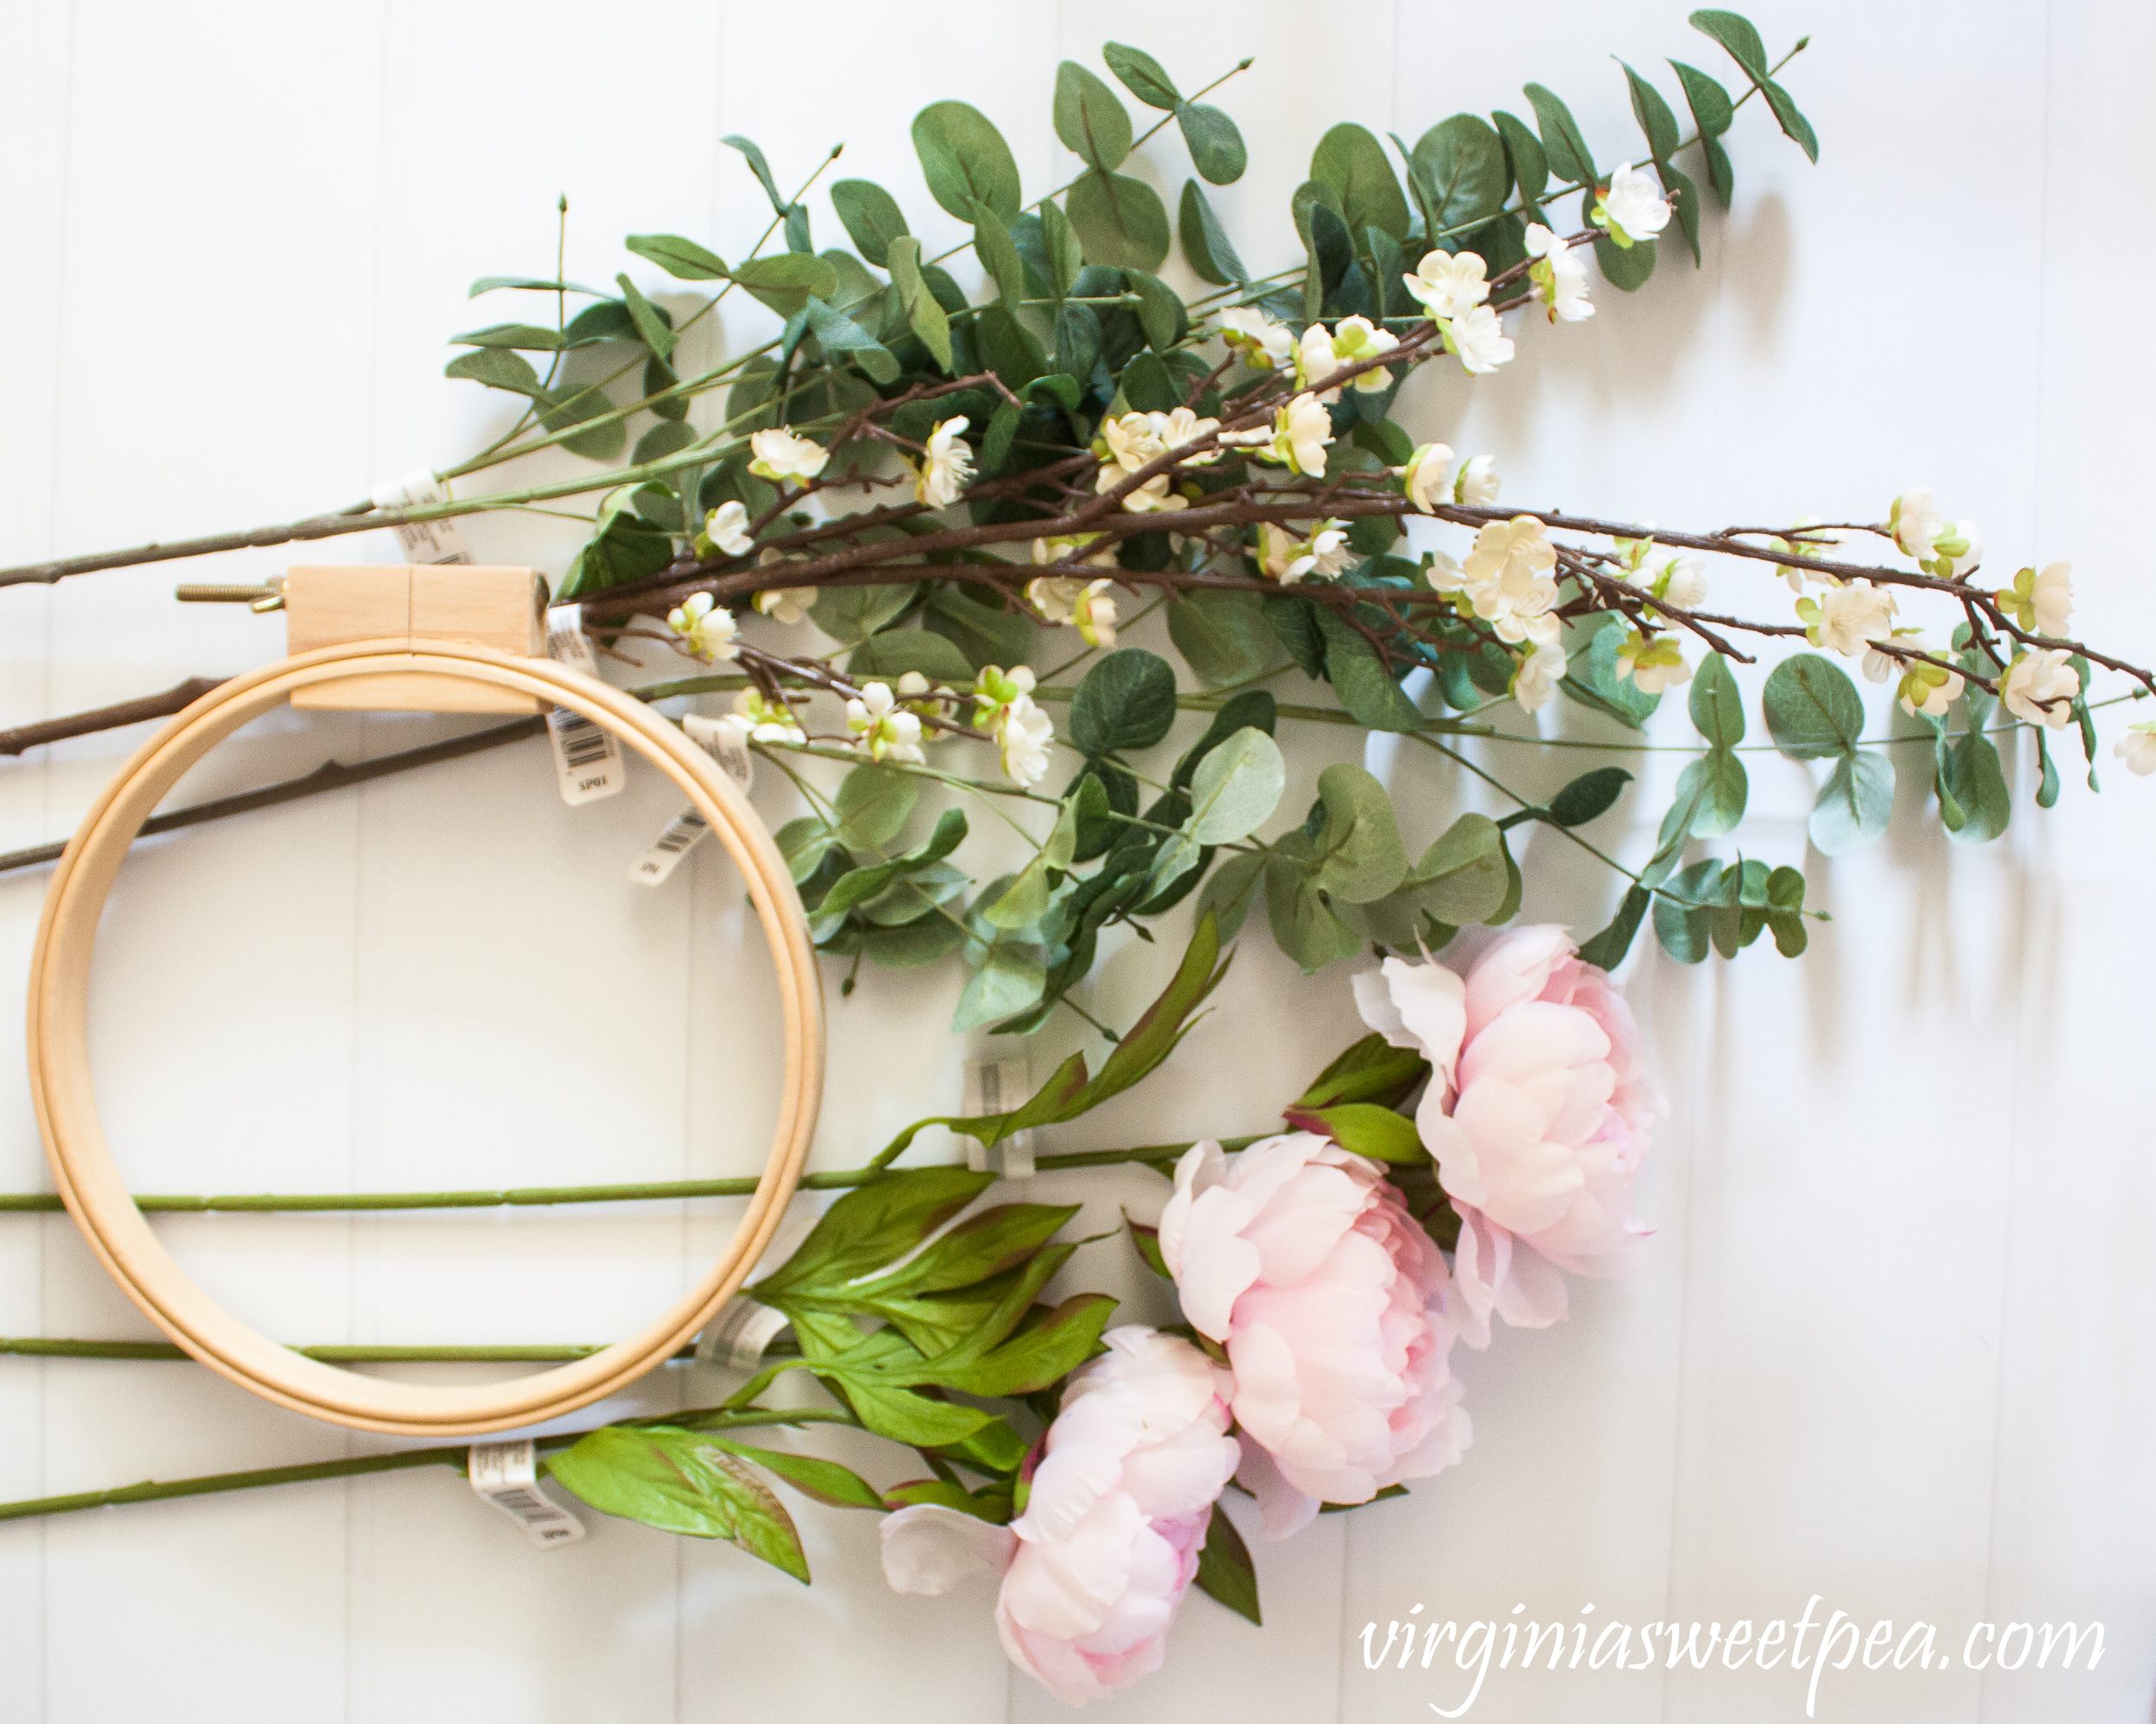 Supplies to make an embroidery hoop wreath